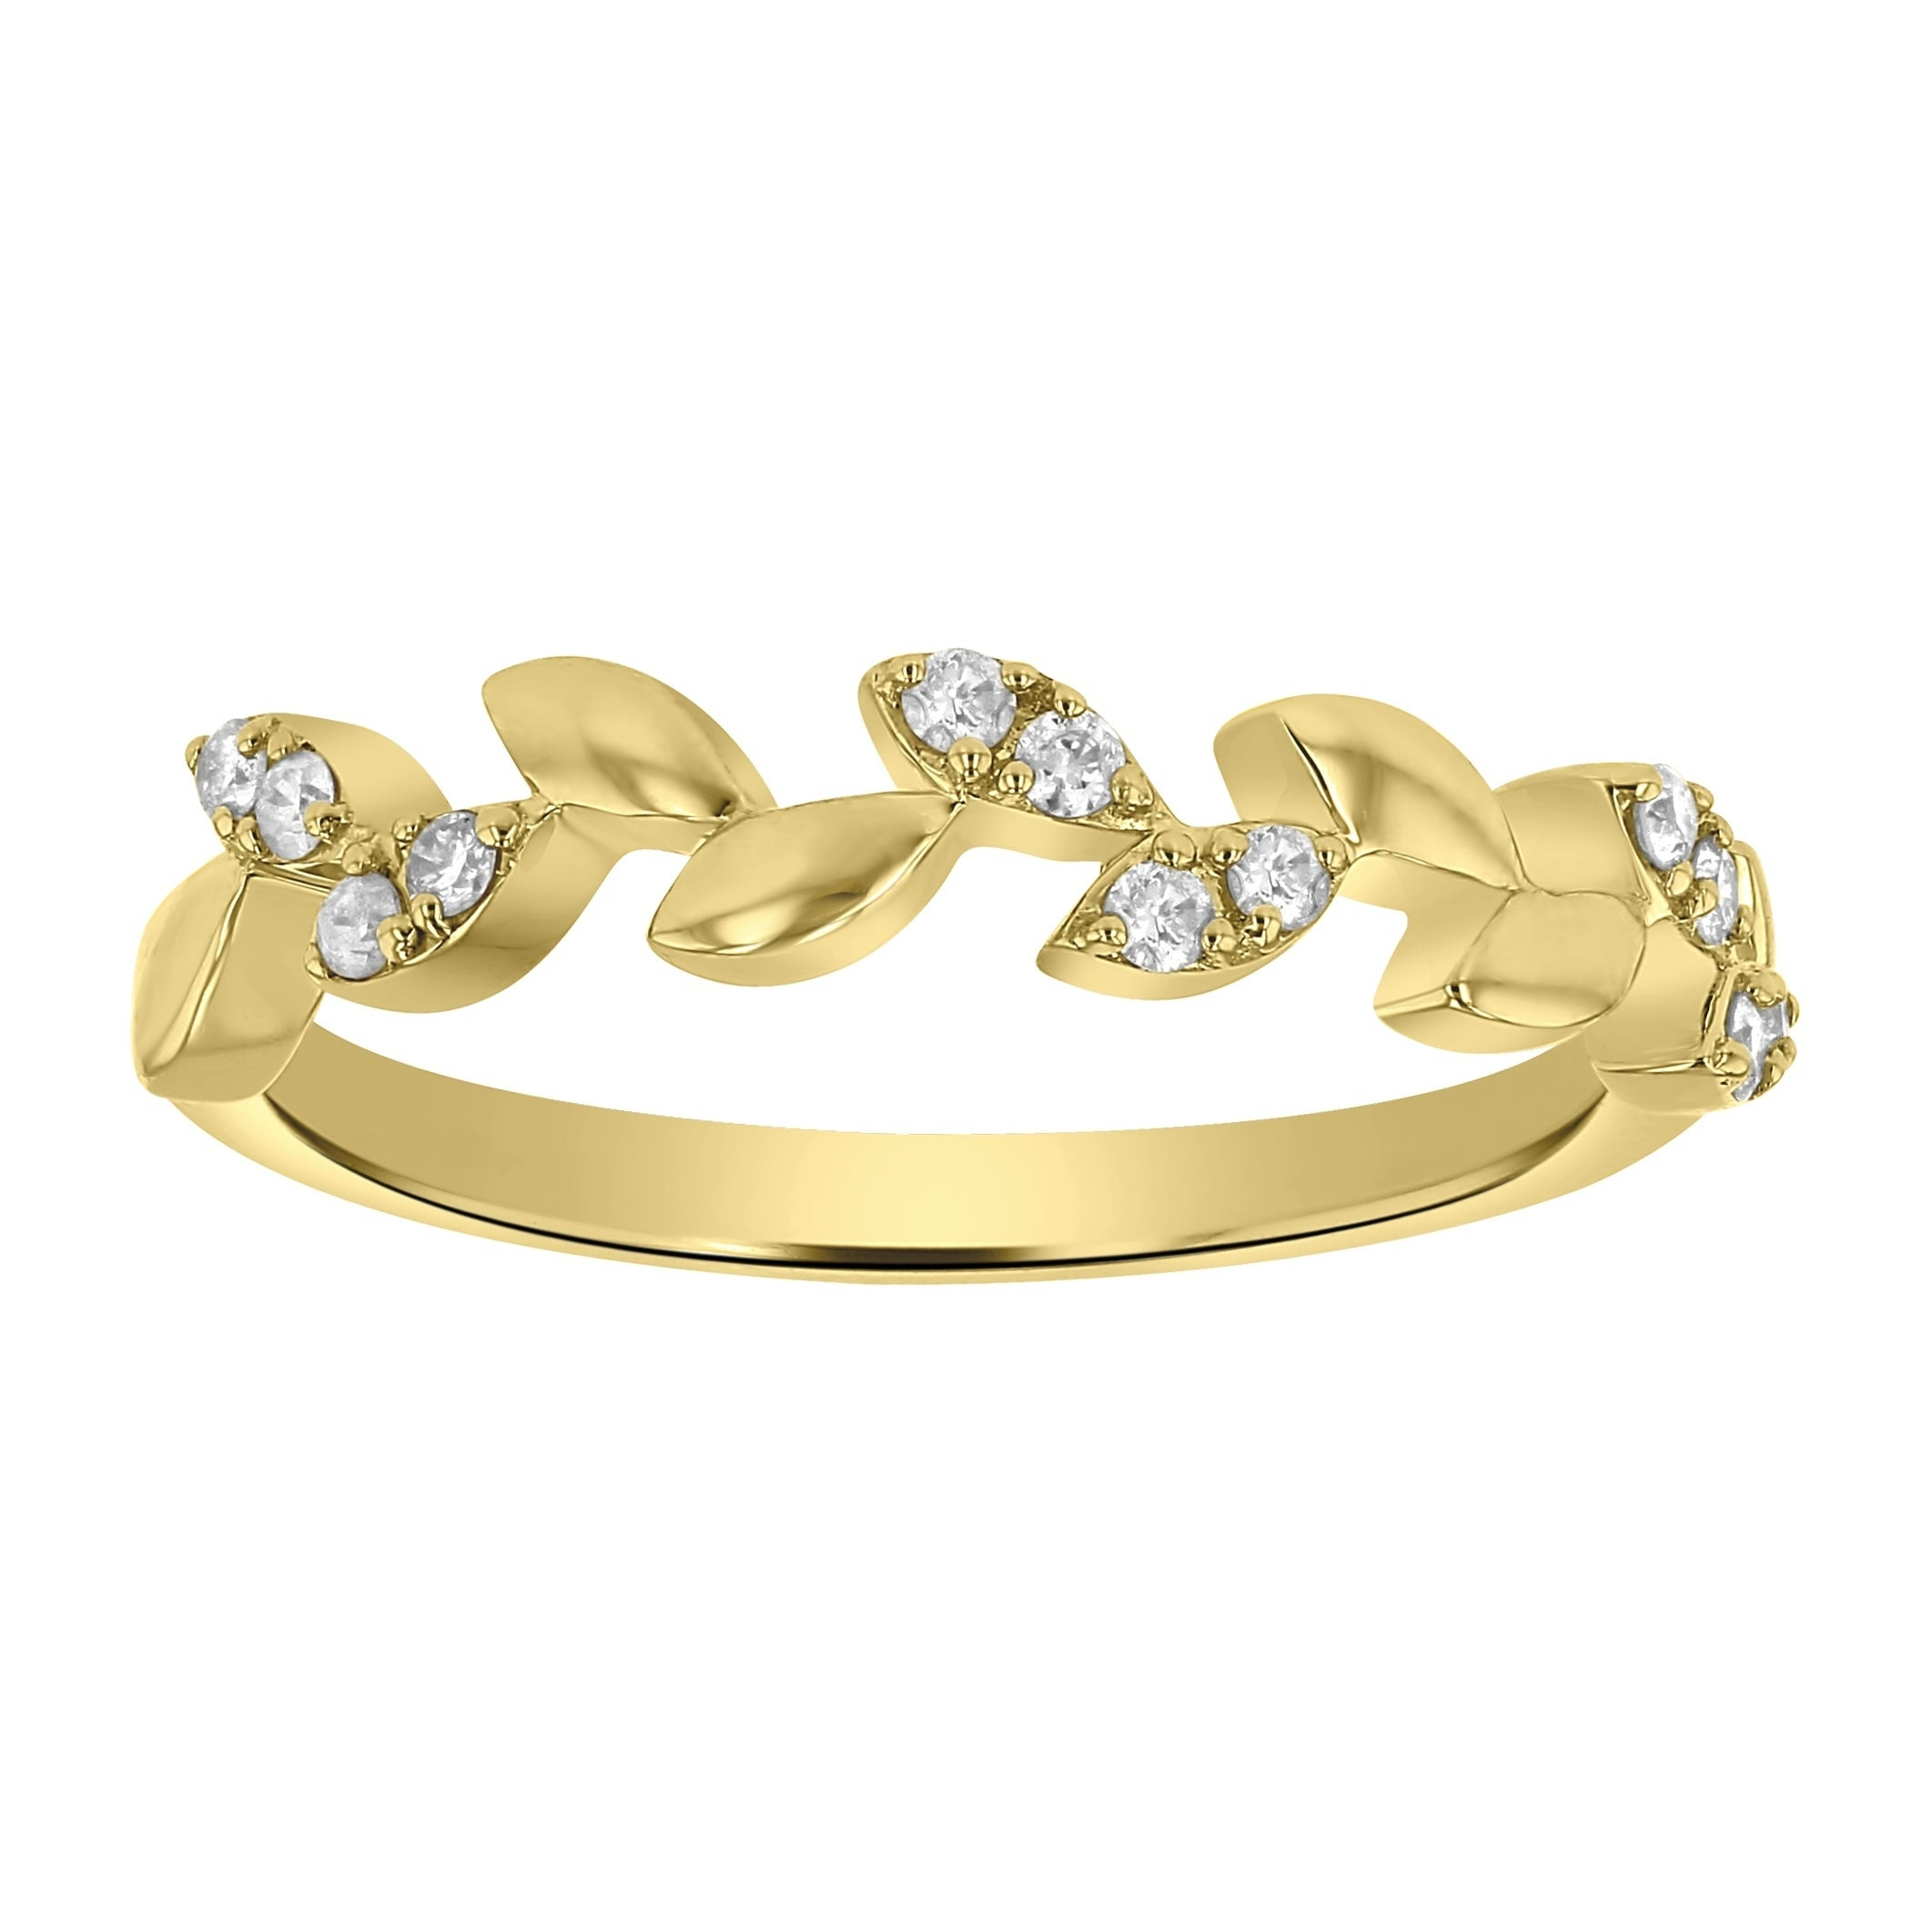 10K Yellow Gold 1/8Ct Tdw Diamond Marquise Leaf Vine Wedding Band – White  H I Within Newest Diamond Vine Two Row Anniversary Rings In Two Tone Gold (View 3 of 25)